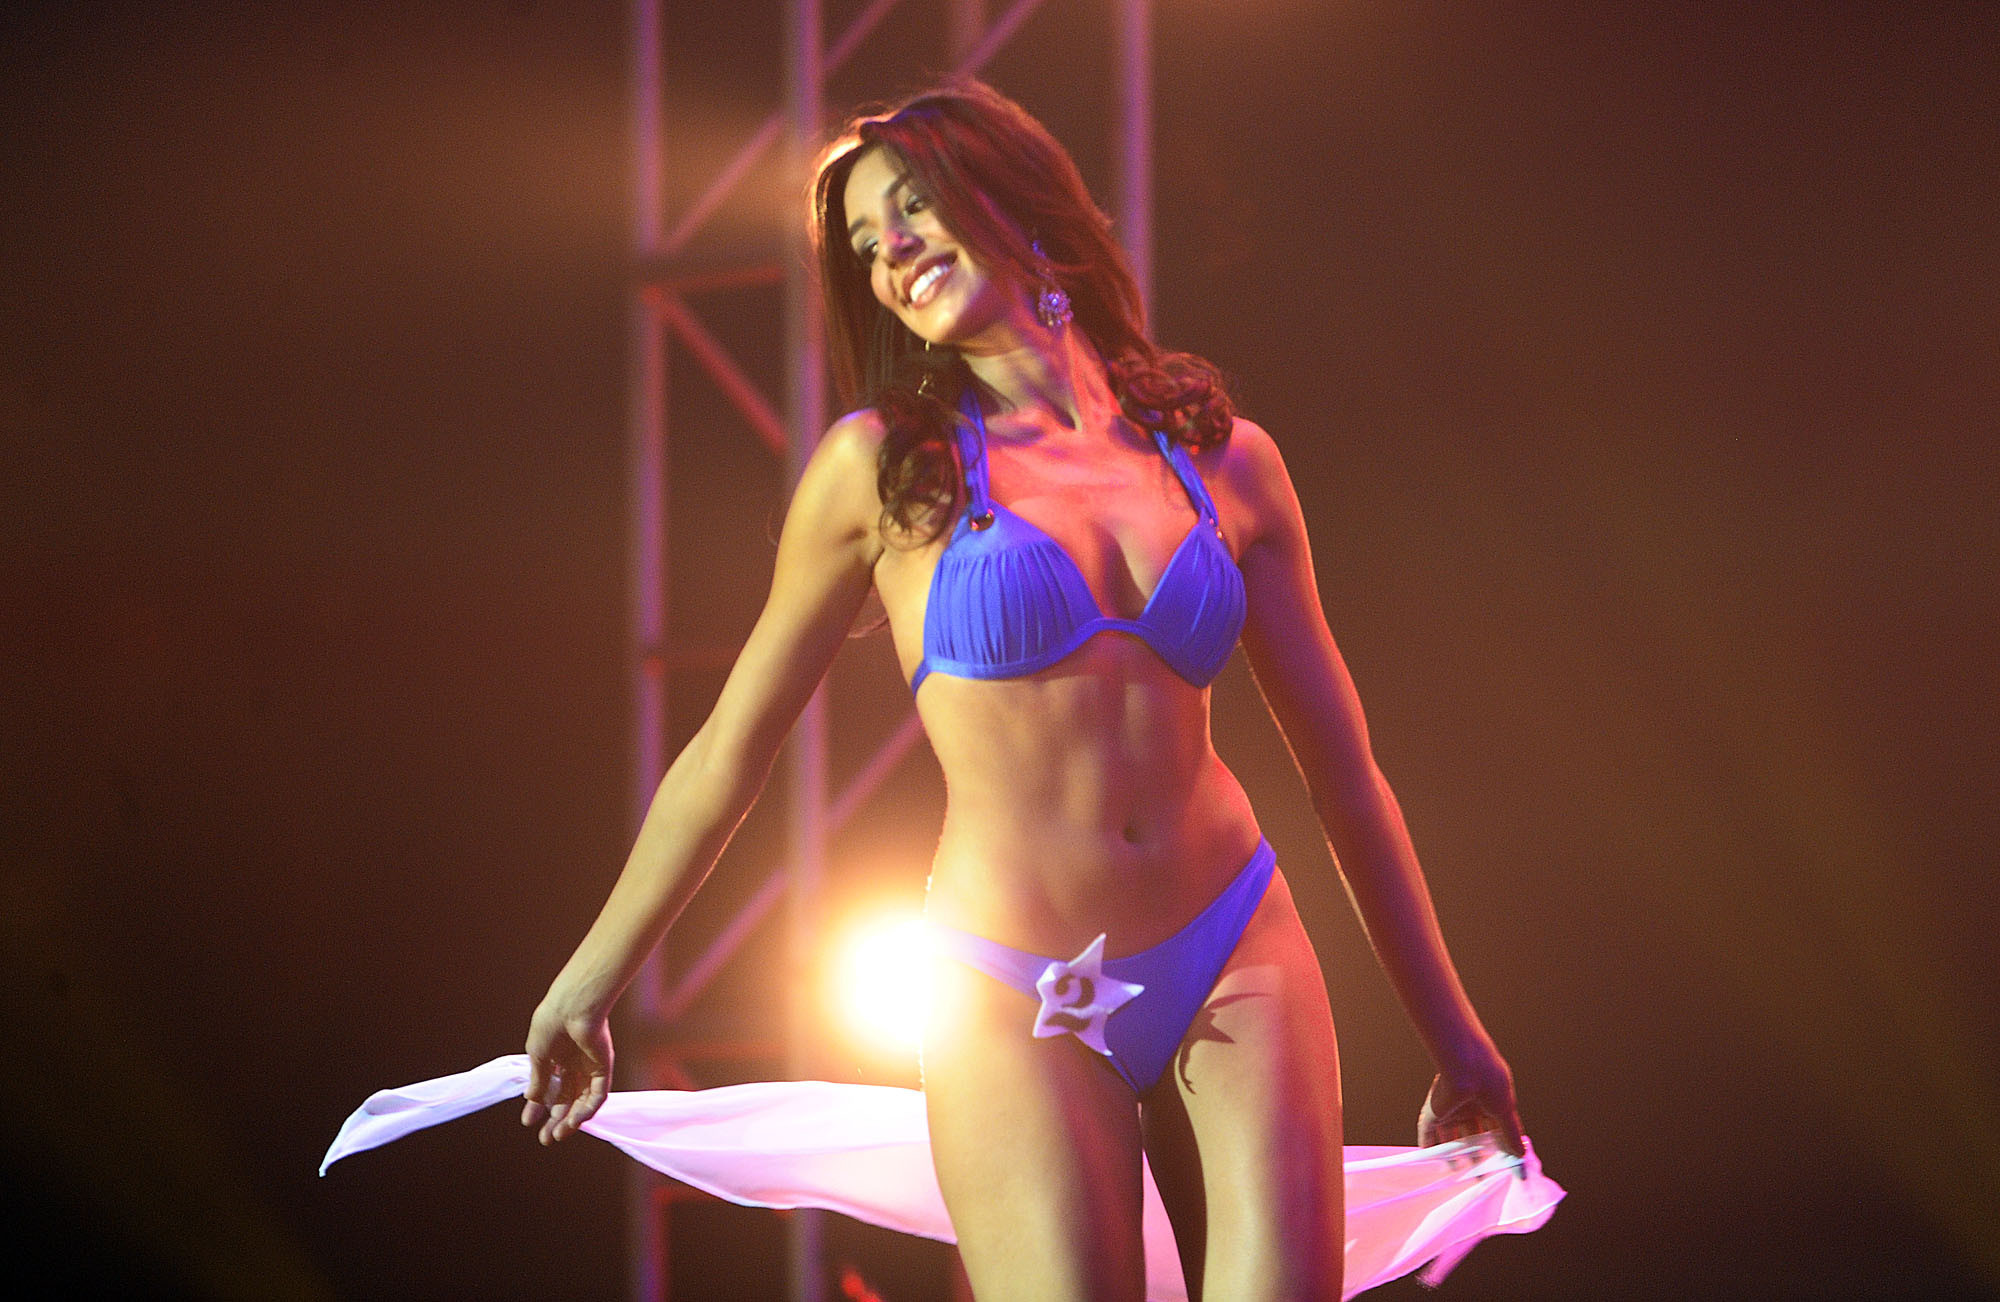 Pictures: Miss Florida USA 2014 - Miss Florida USA pageant...